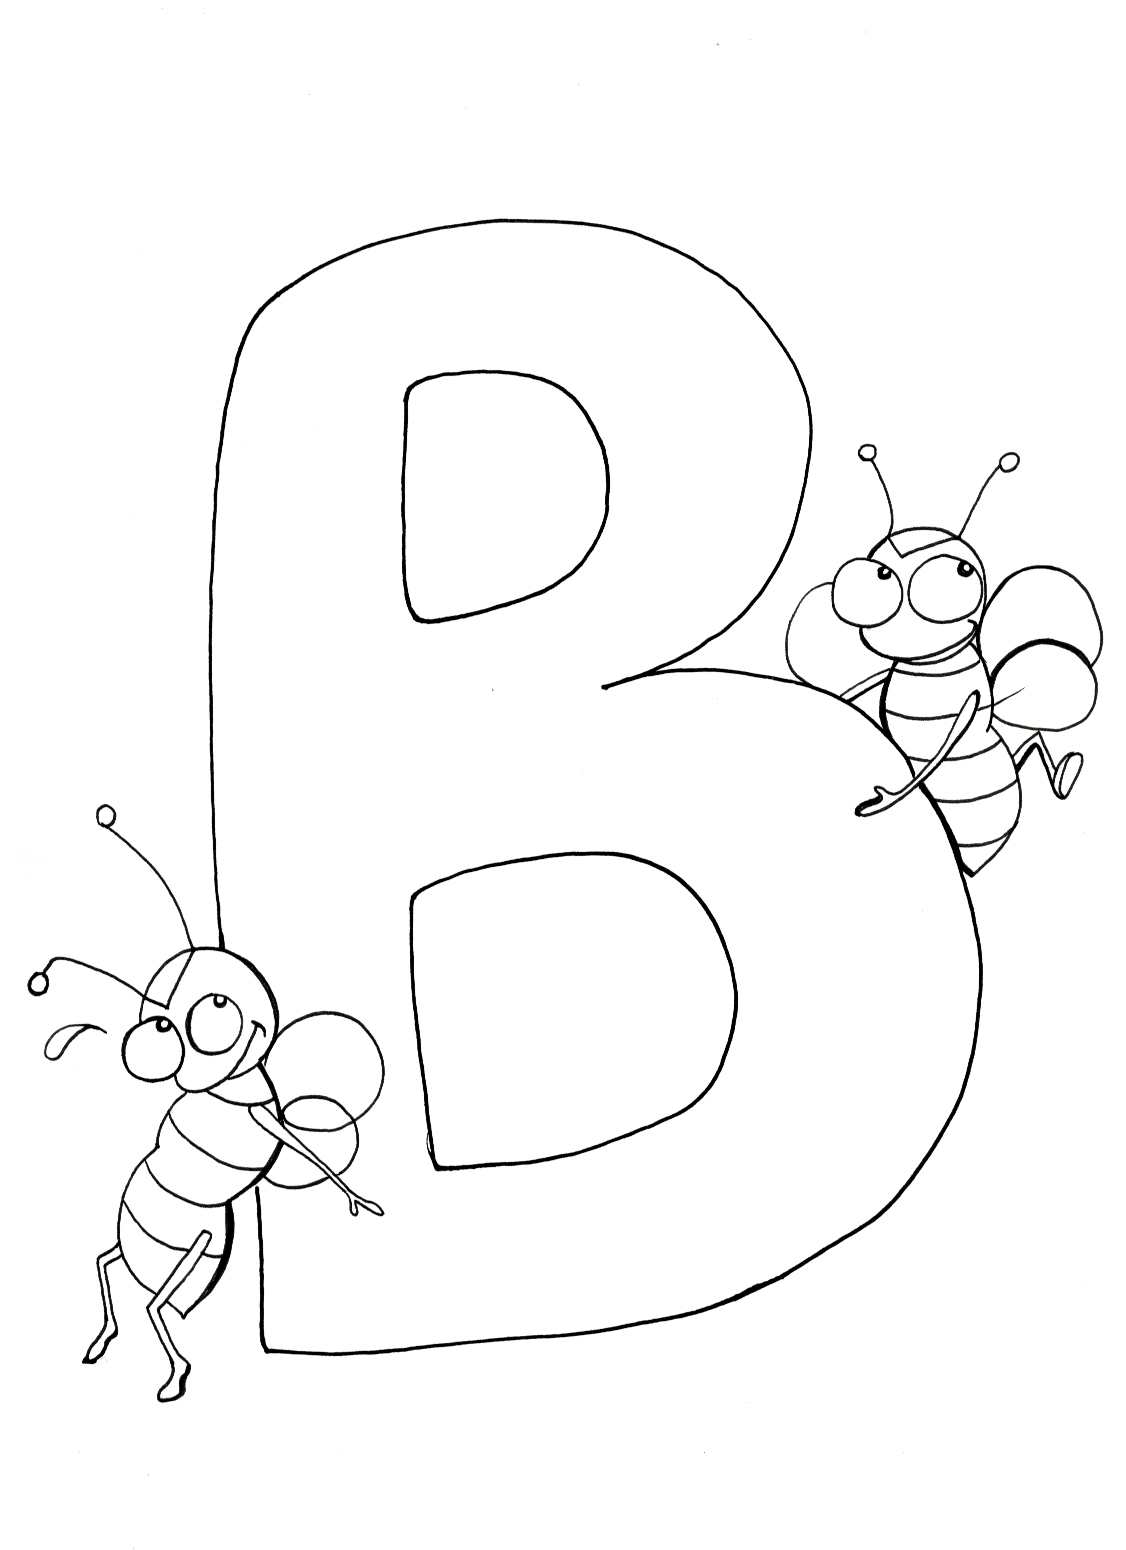 Letter B Coloring Pages Letter B Coloring Pages At Getdrawings Free For Personal Use